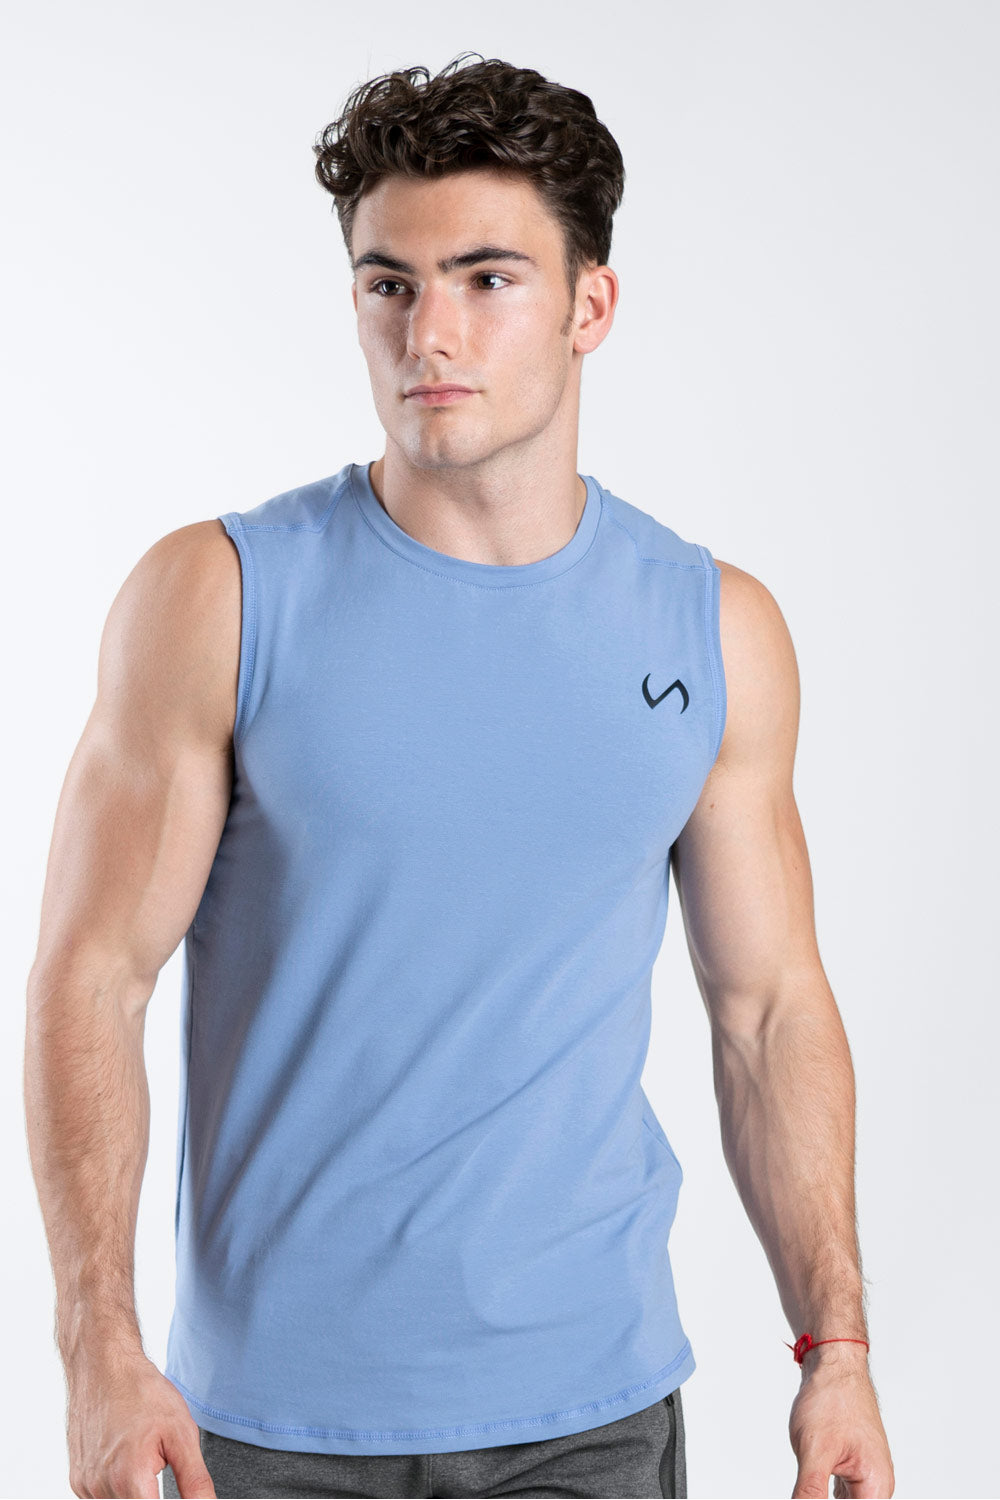 TLF Taurus Sleeveless Crew - Tank - TLF Apparel | Take Life Further